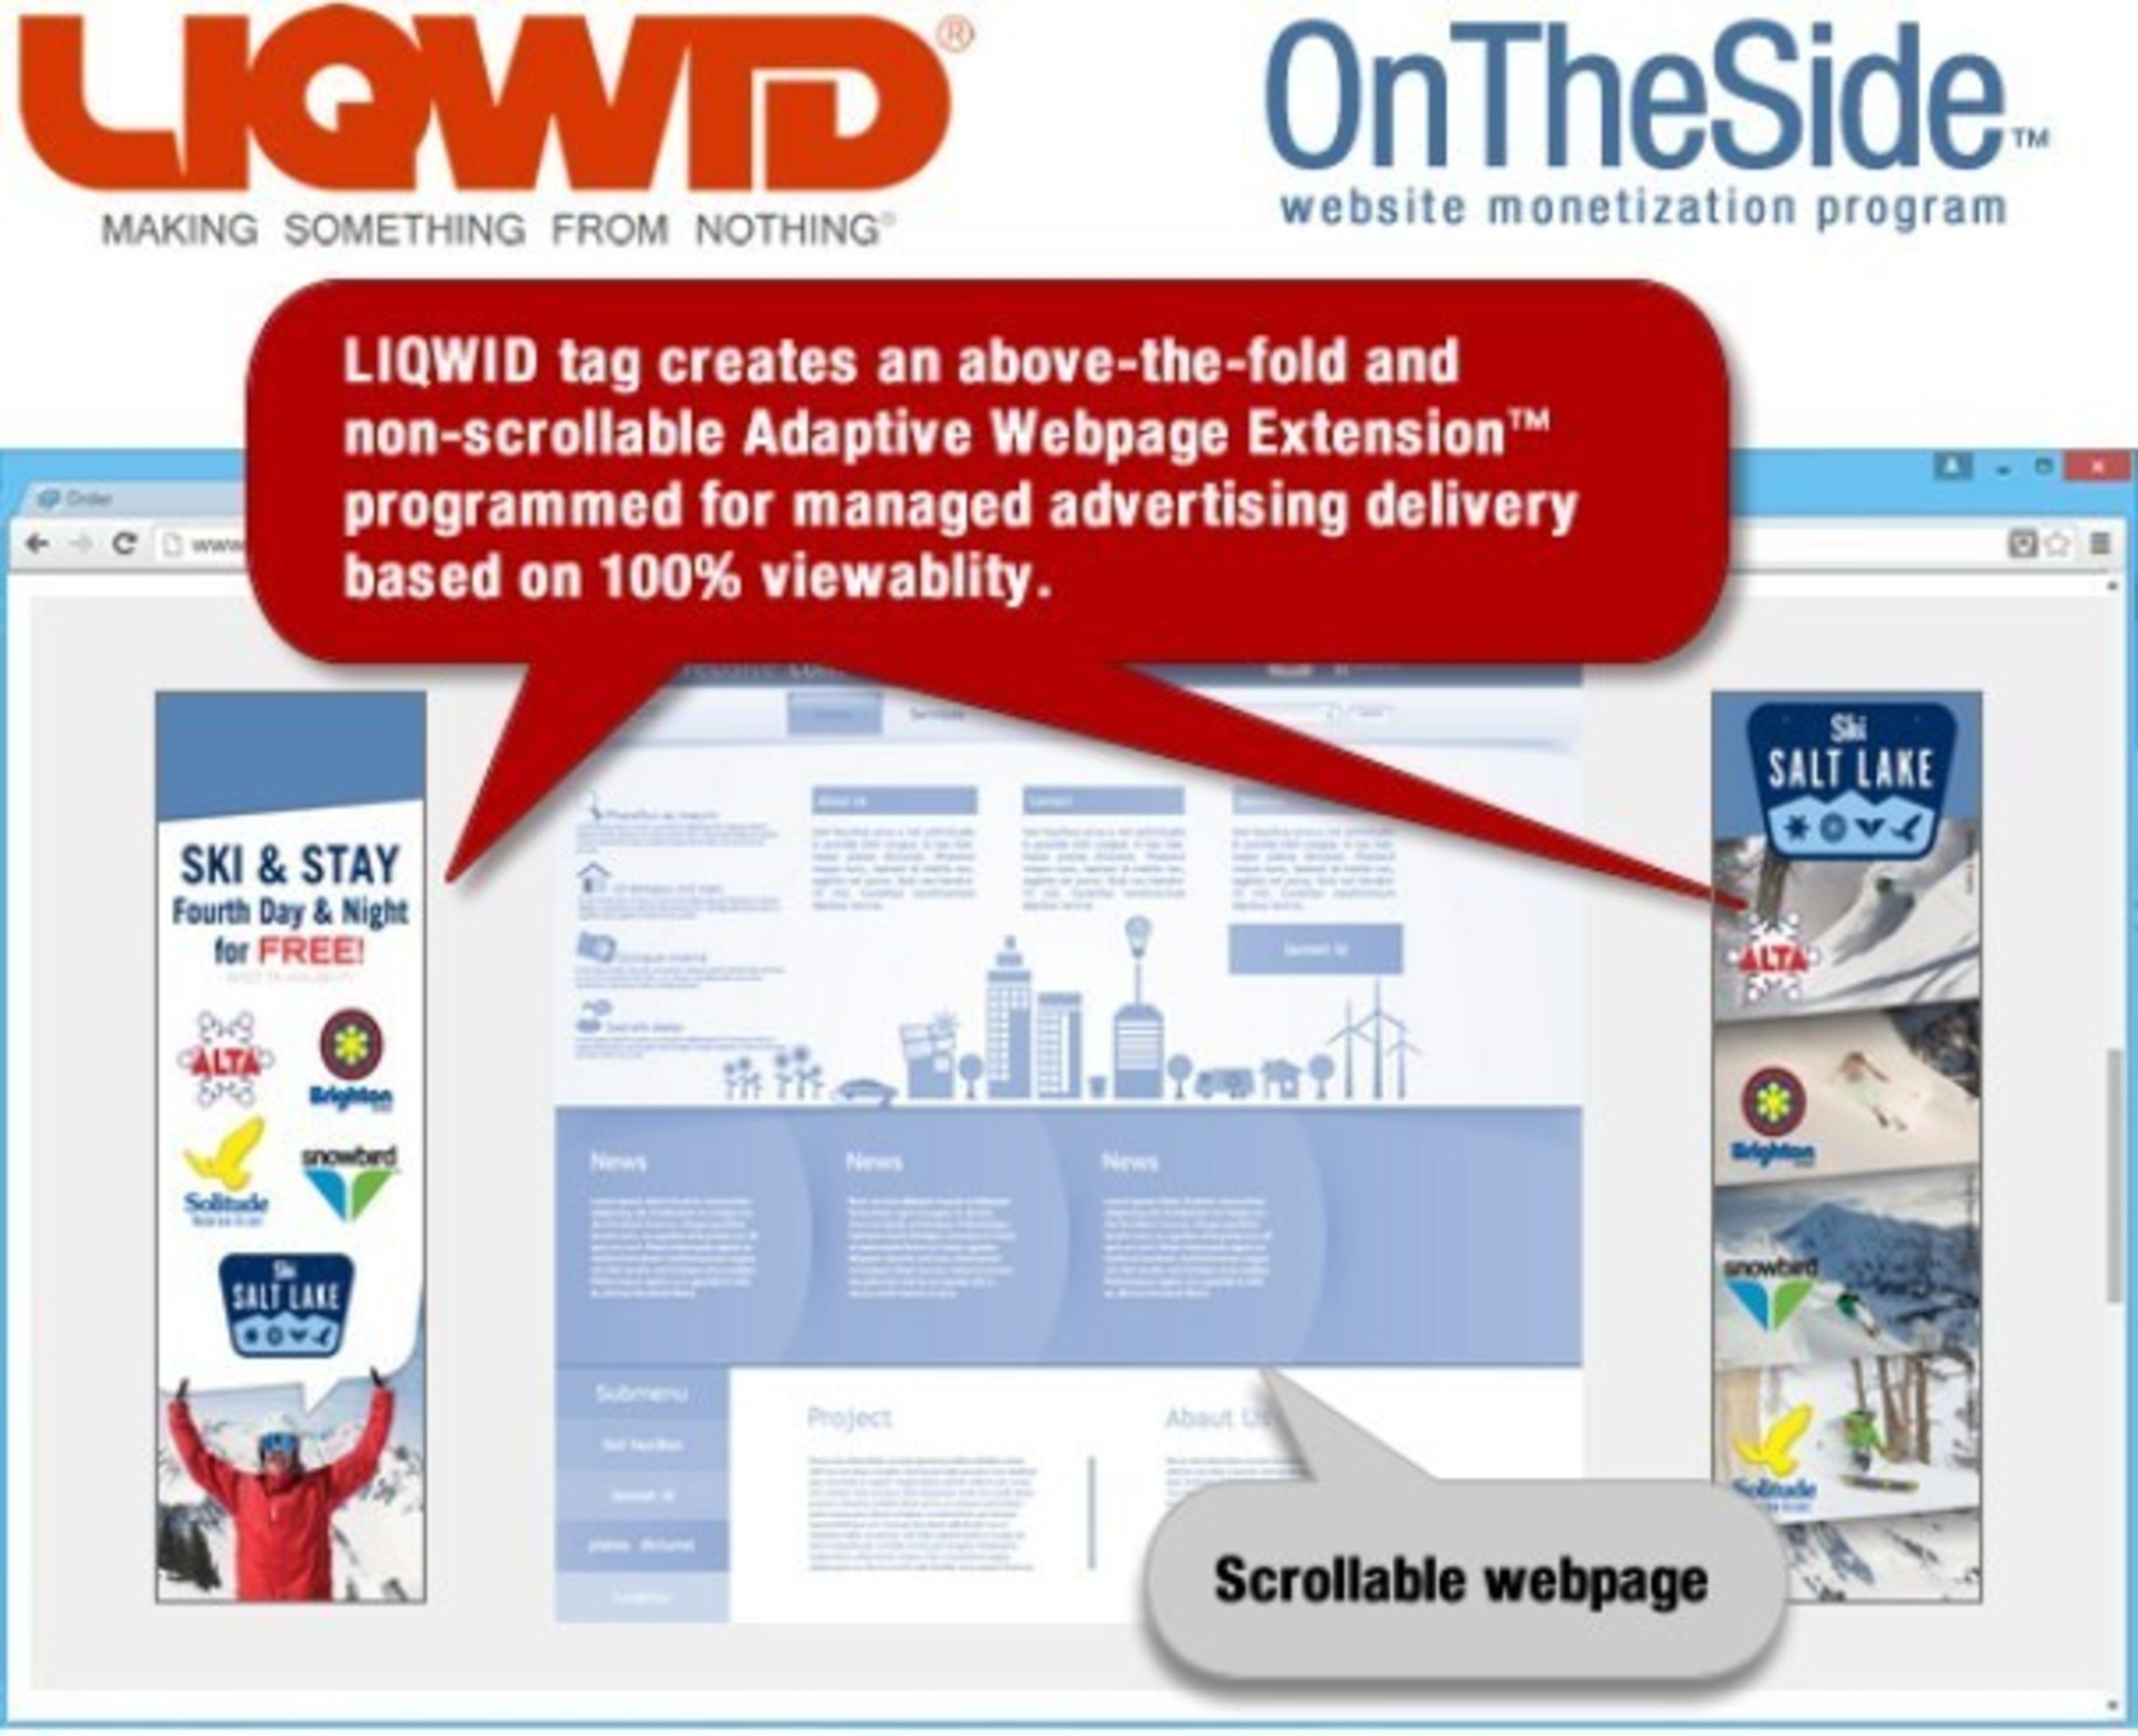 LIQWID® Announces the Release of OnTheSide™, a Website Monetization